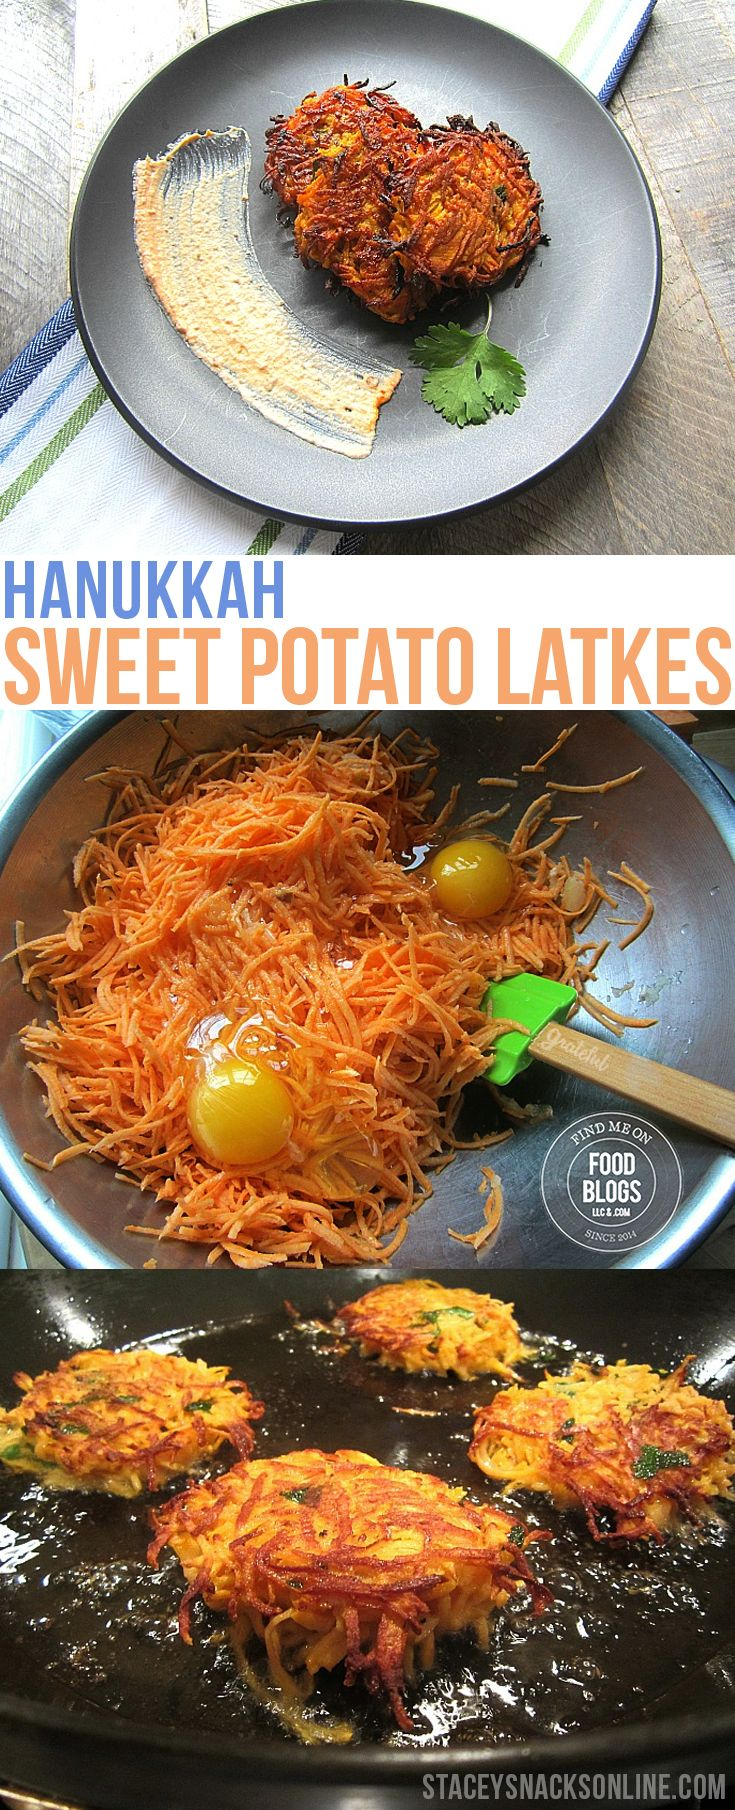 Best 25+ Hanukkah recipes ideas on Pinterest | Hanukkah ...